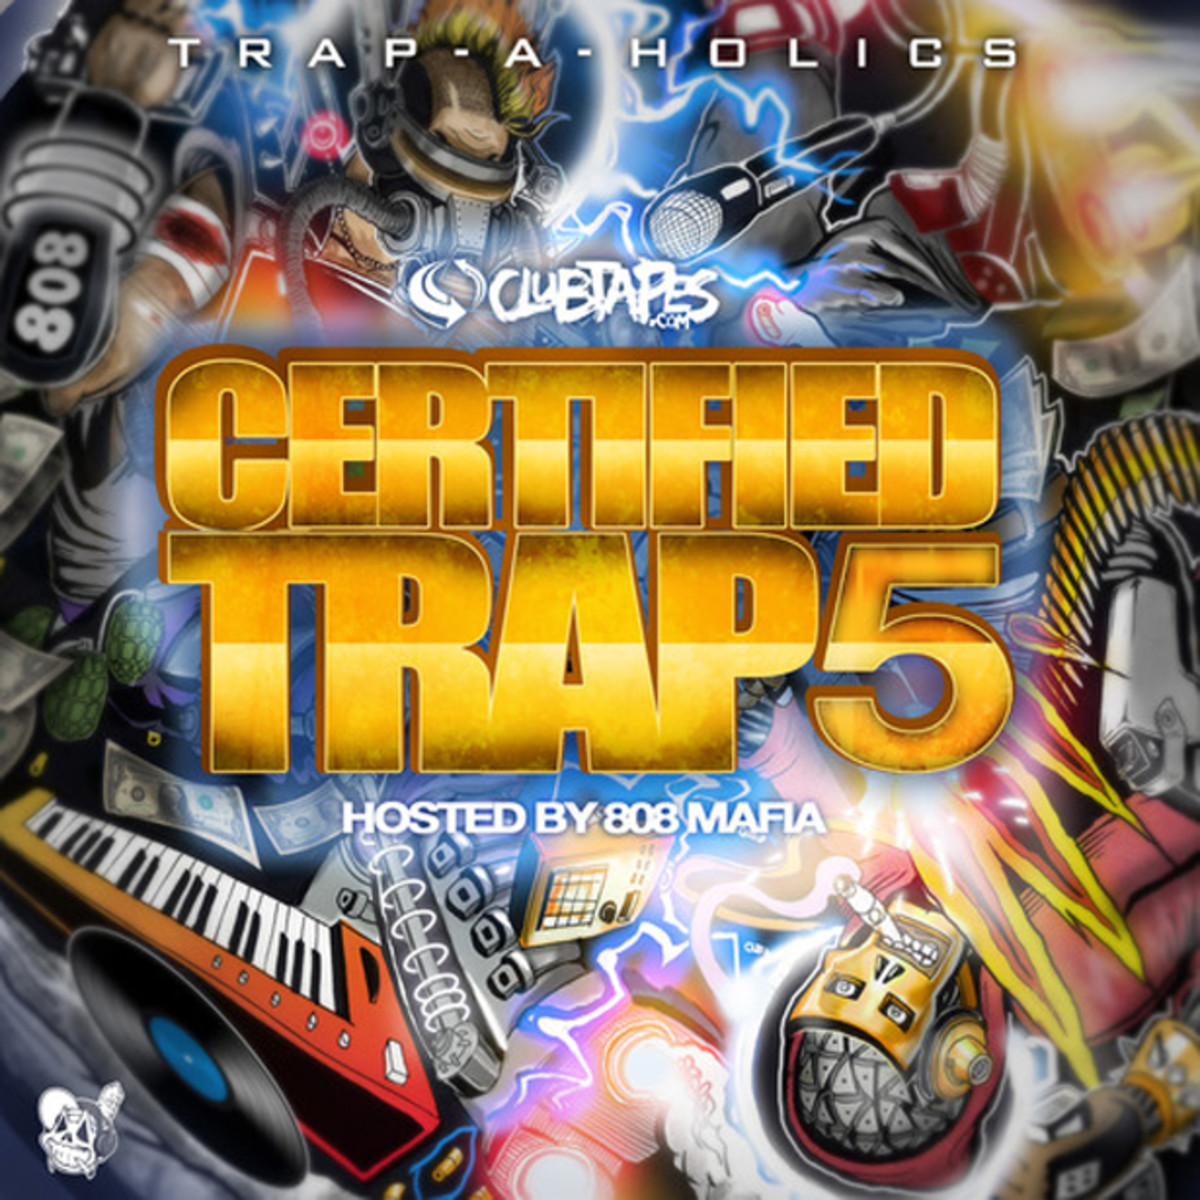 EDM Download: Certified Trap 5 Merges The New Electronic Music And Hip Hop scenes